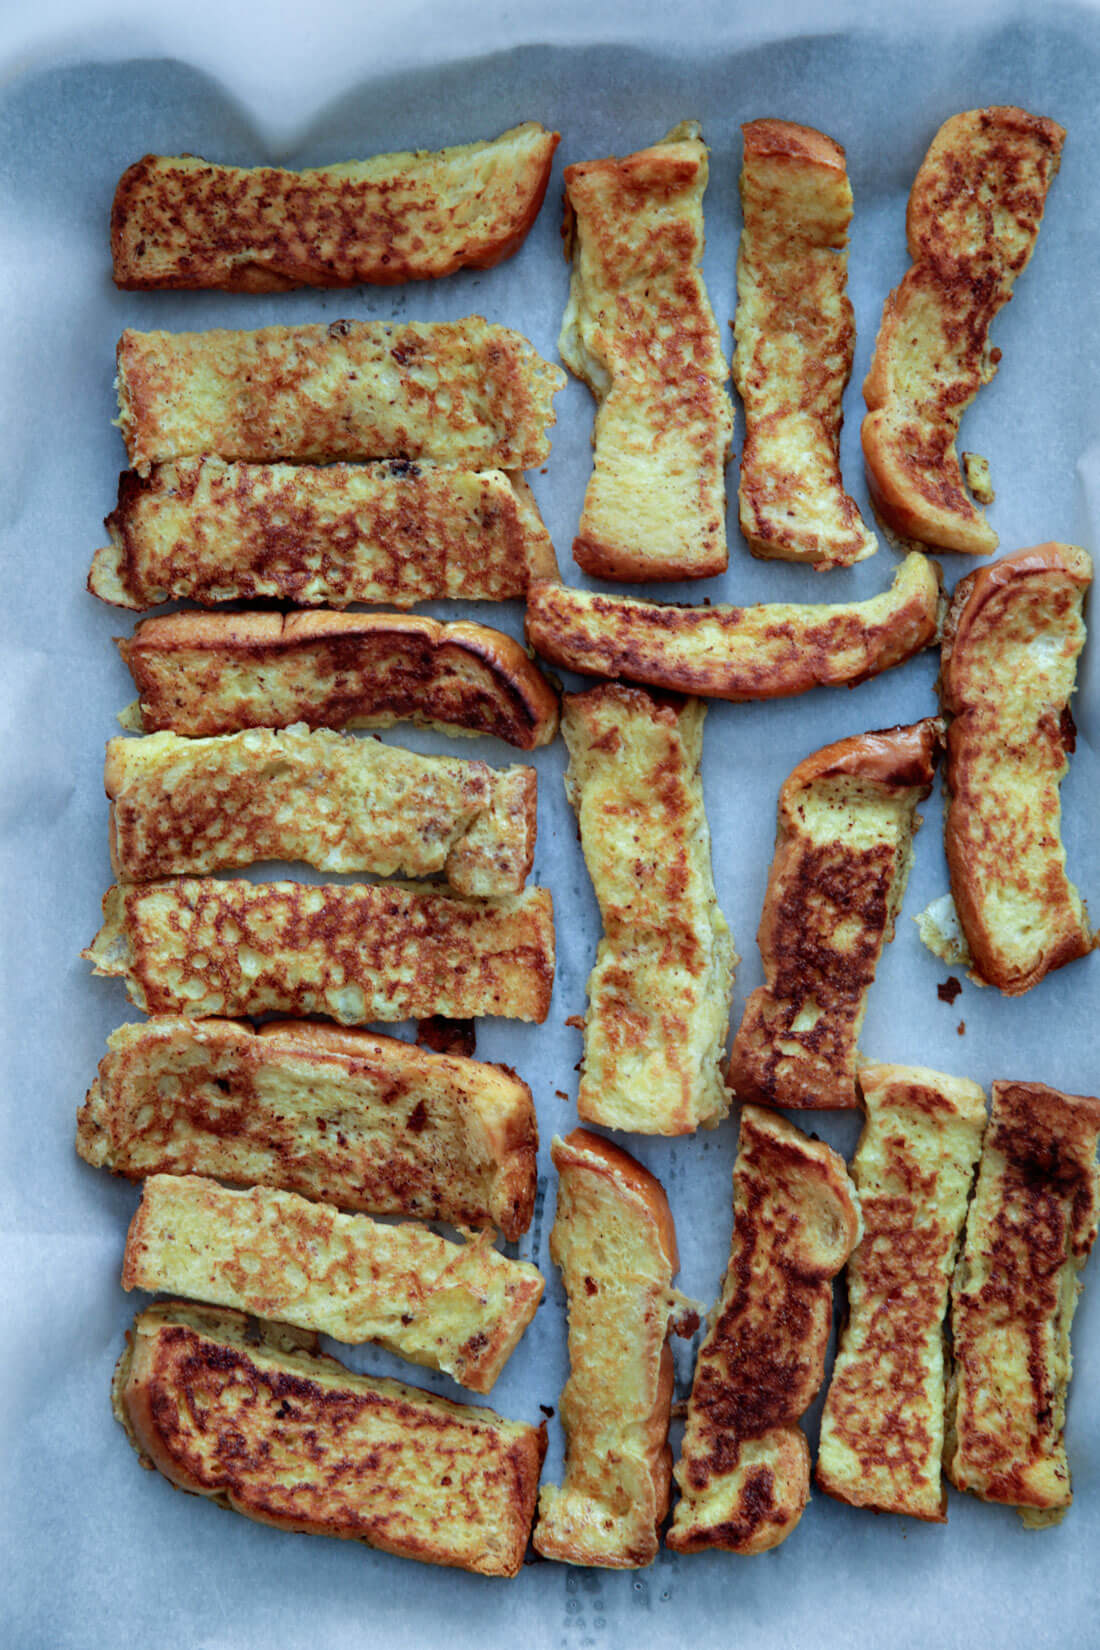 Freezer French Toast Sticks - they're easy to make ahead and eat throughout the week!